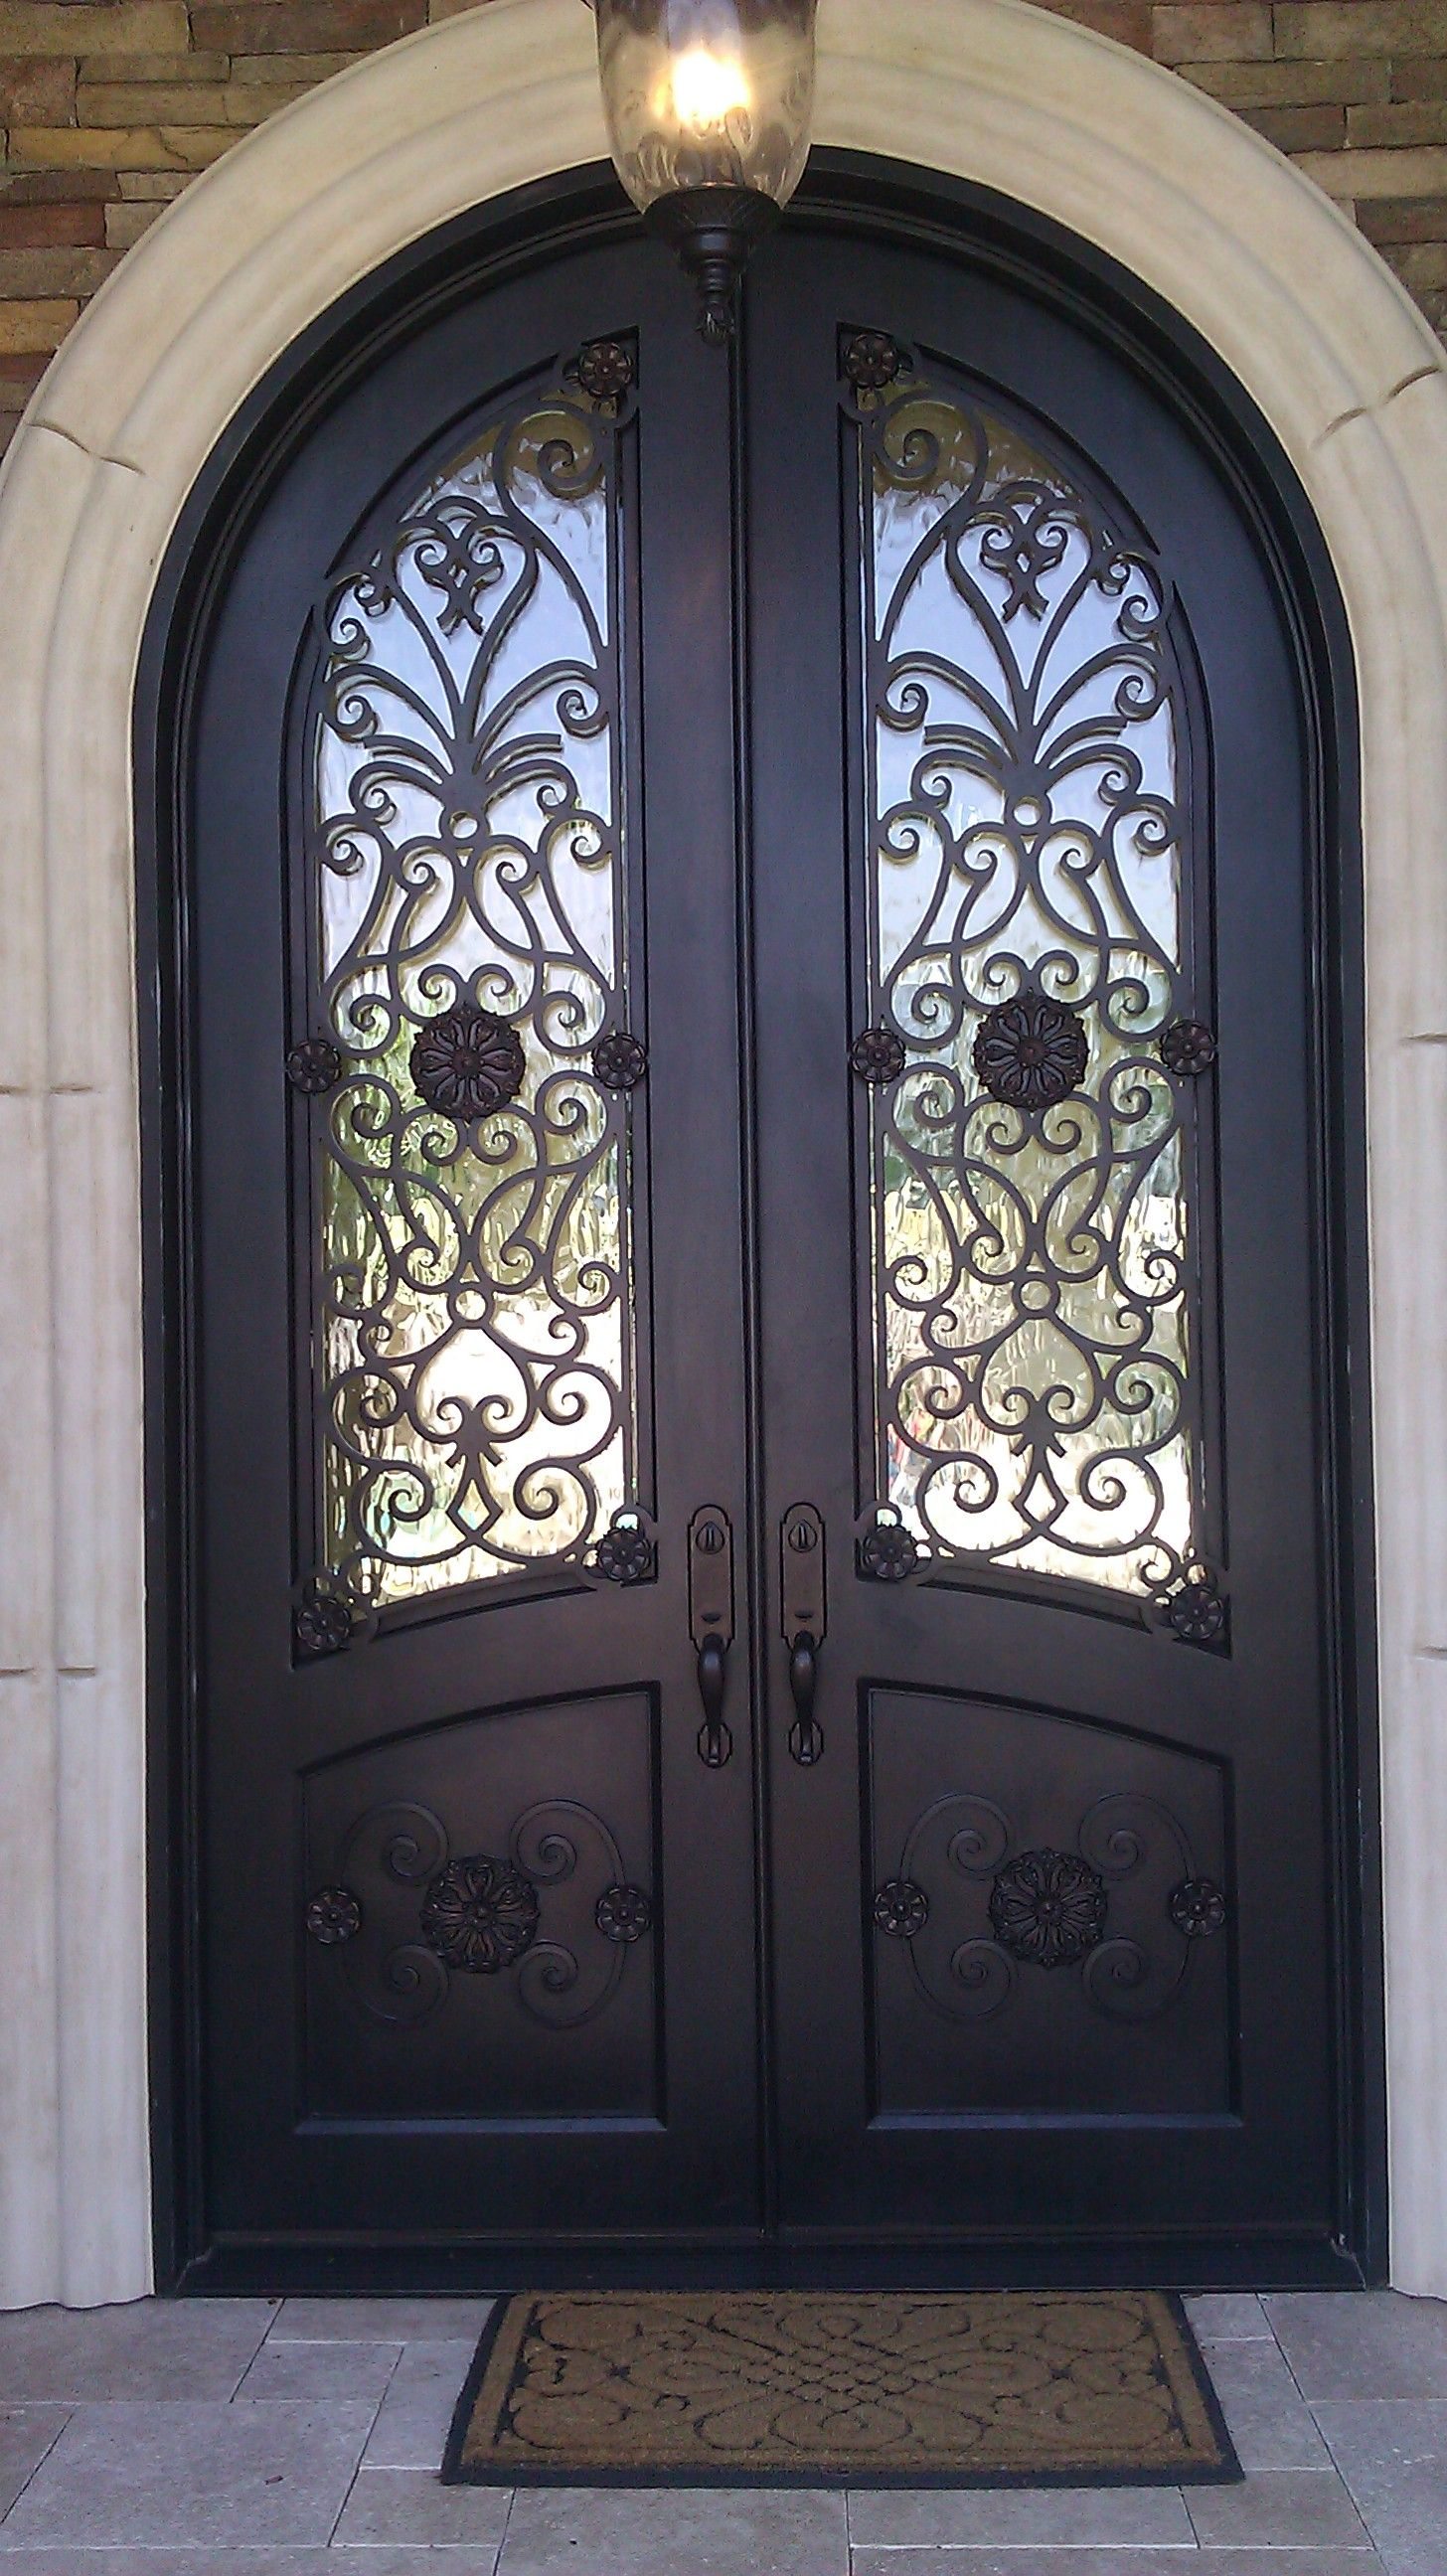 2592 #715F45 Iron Doors Arched Doors The Doors Entrance Doors Iron Front Door  save image Arch Doors Exterior 39771456